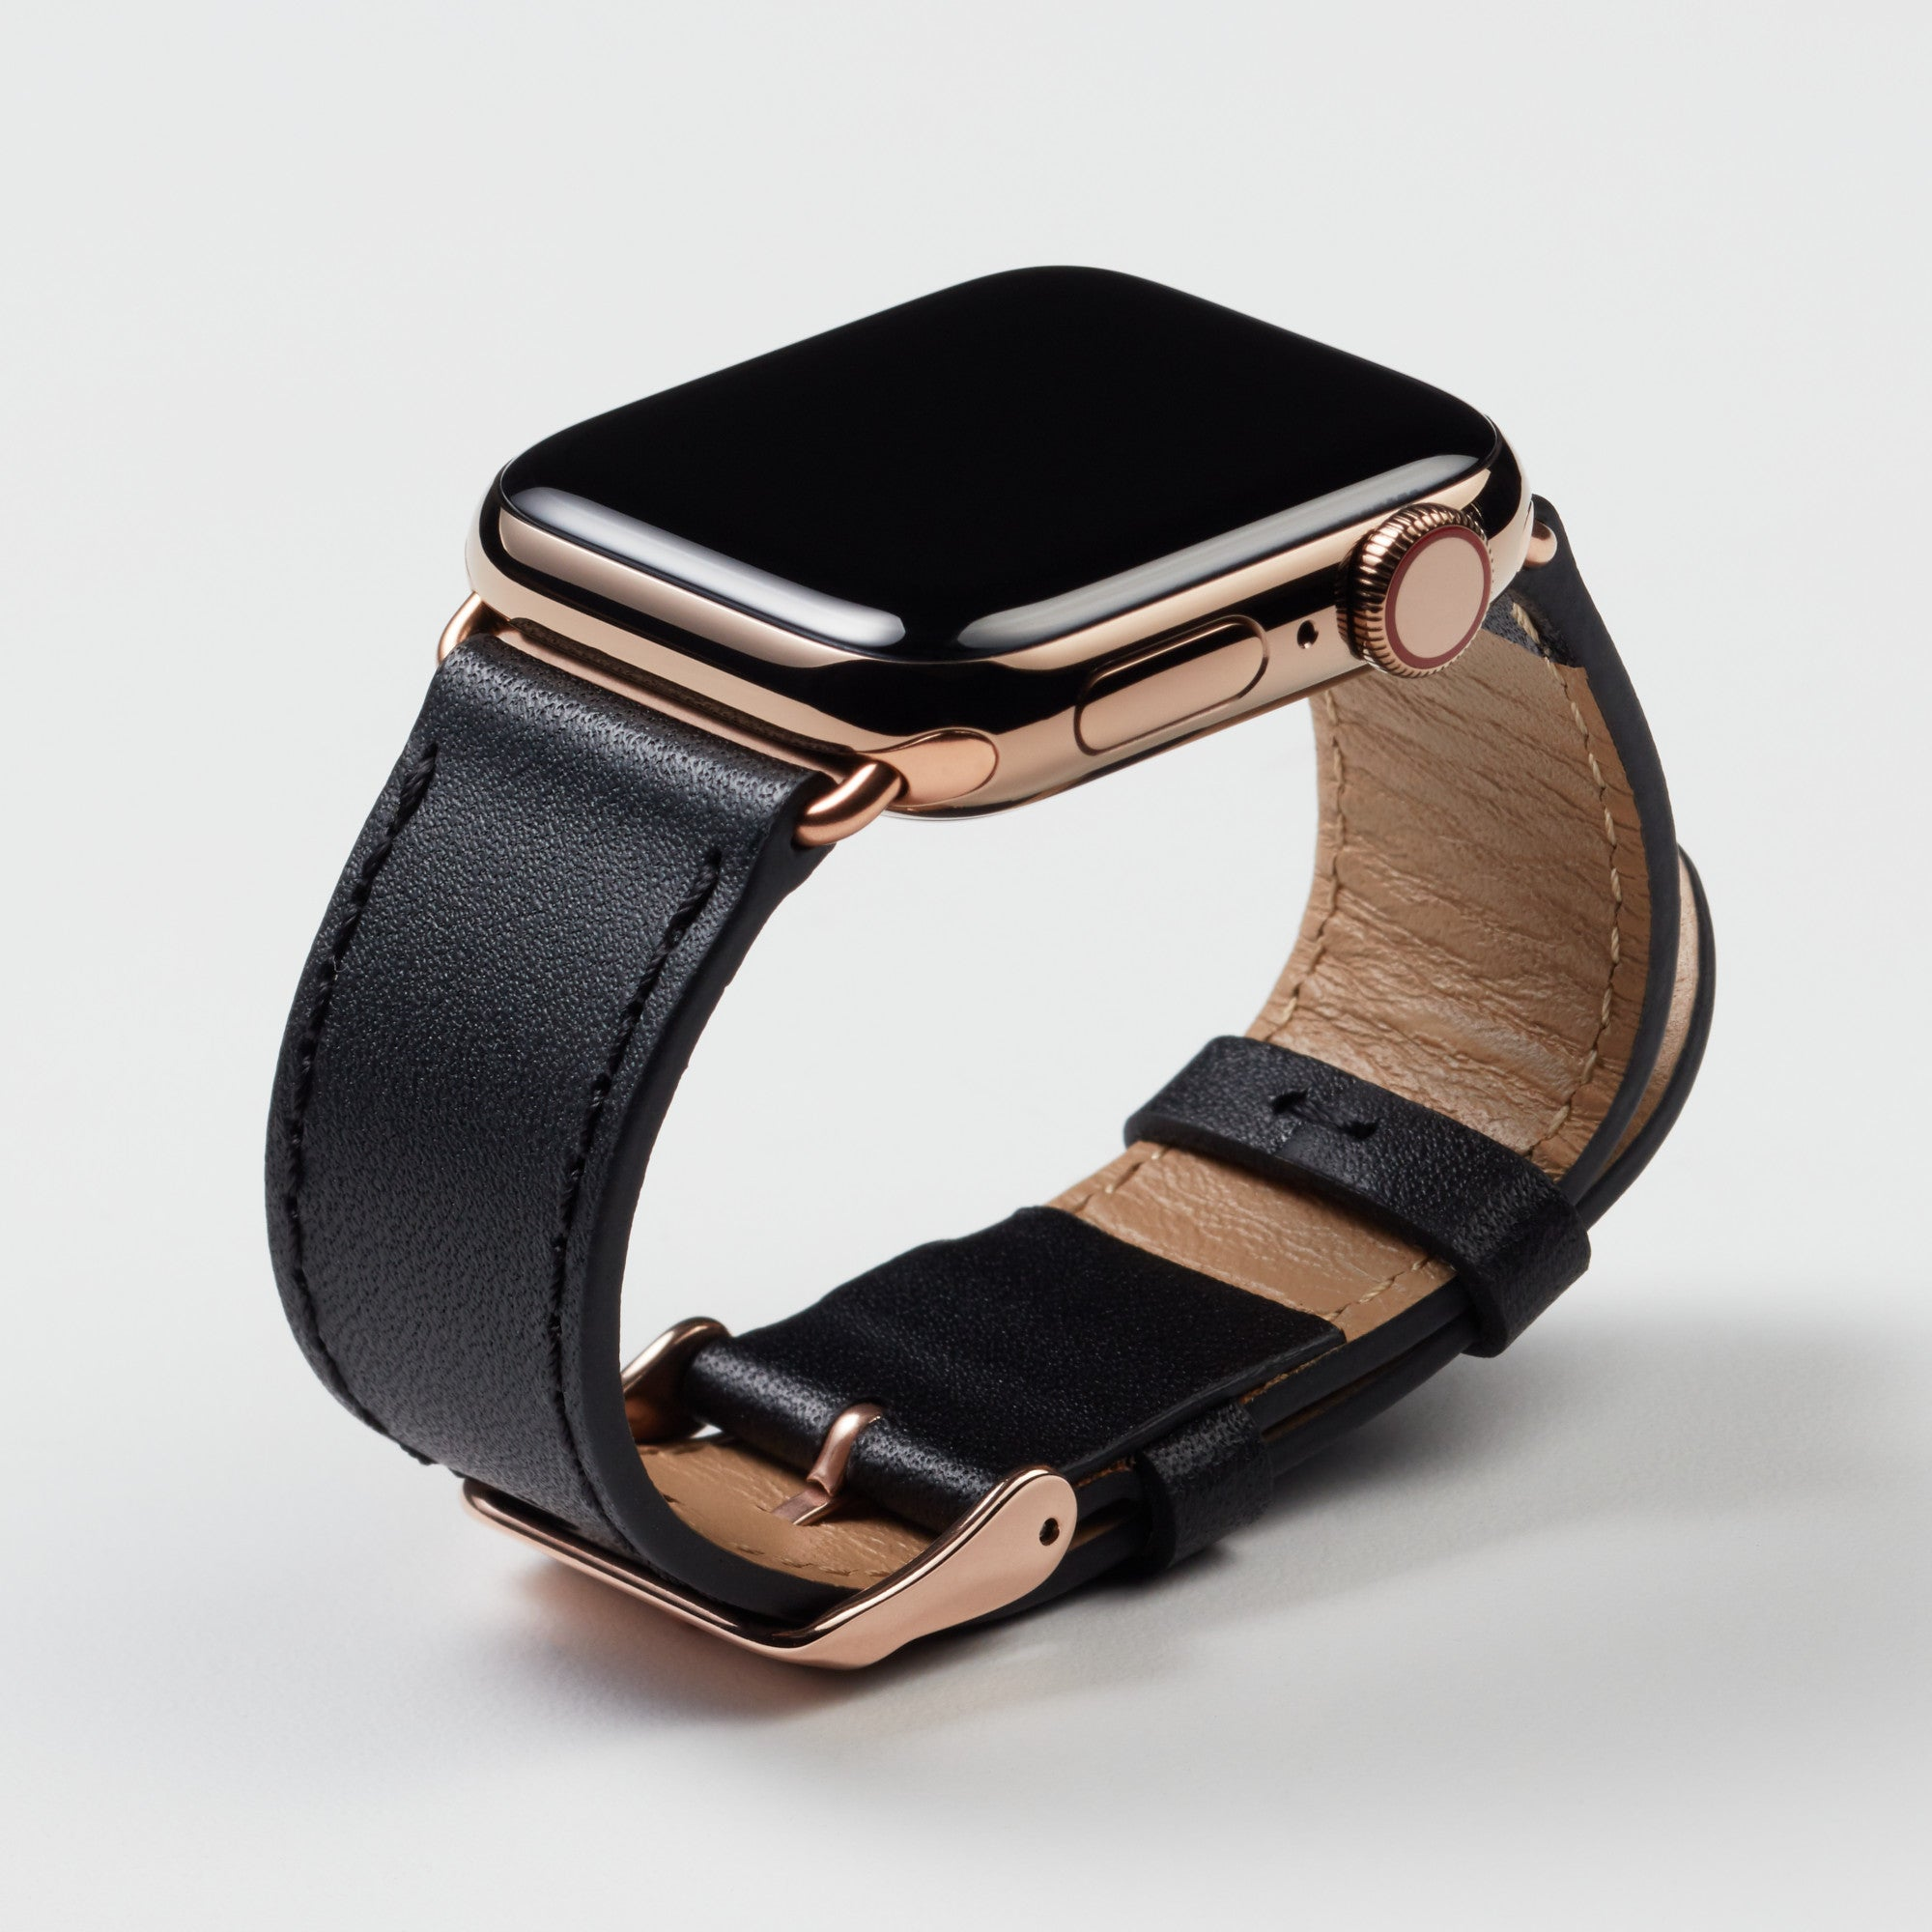 Pin and Buckle Apple Watch Bands - Full Grain Vegetable Tanned Leather - Luxe - Nero Black - Gold